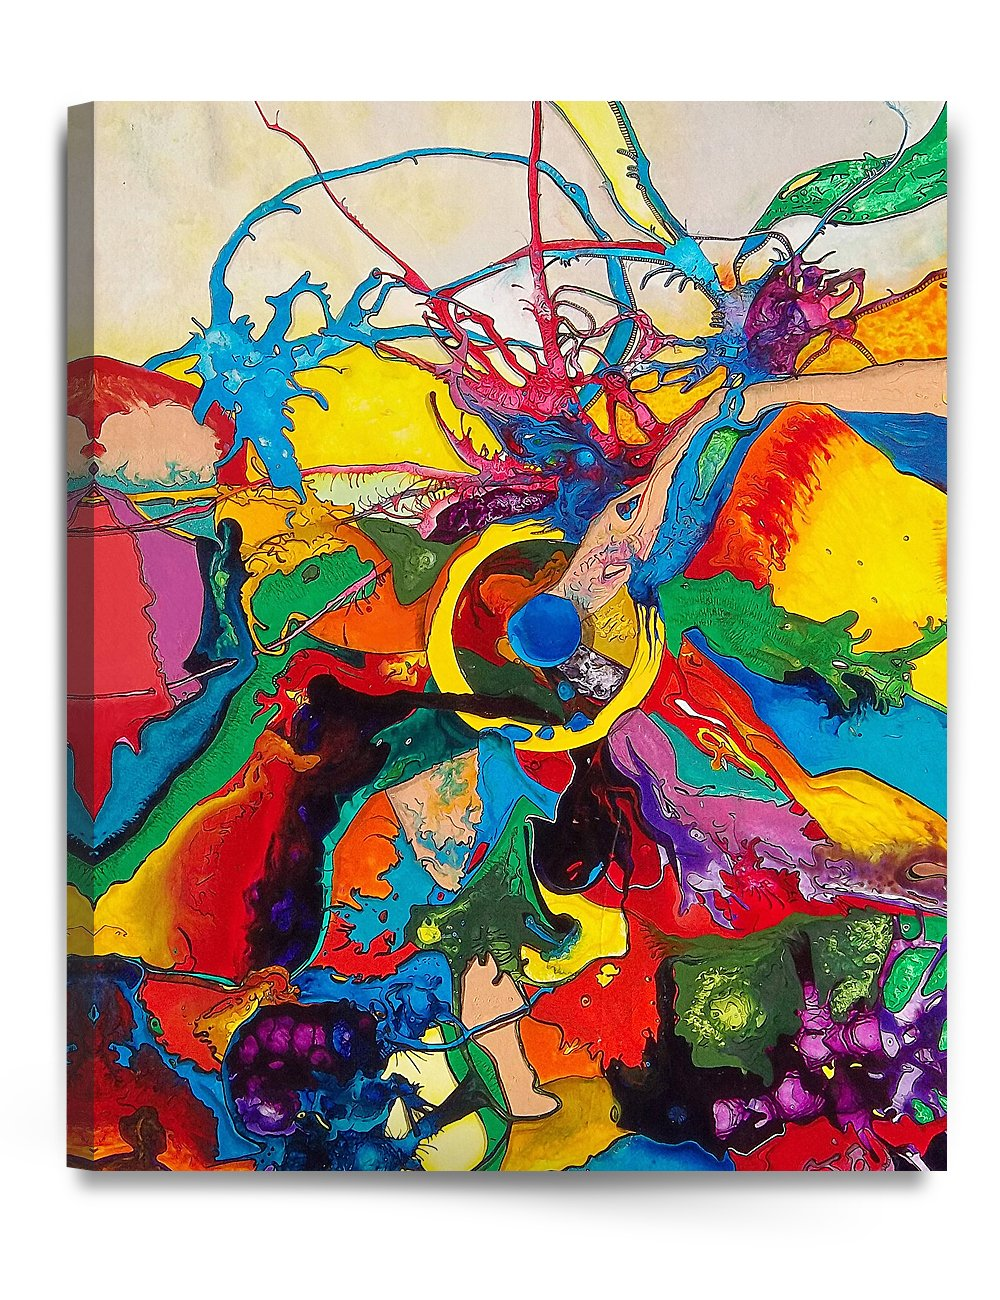 DecorArts Abstract Reproduction Acid free stretched Image 1